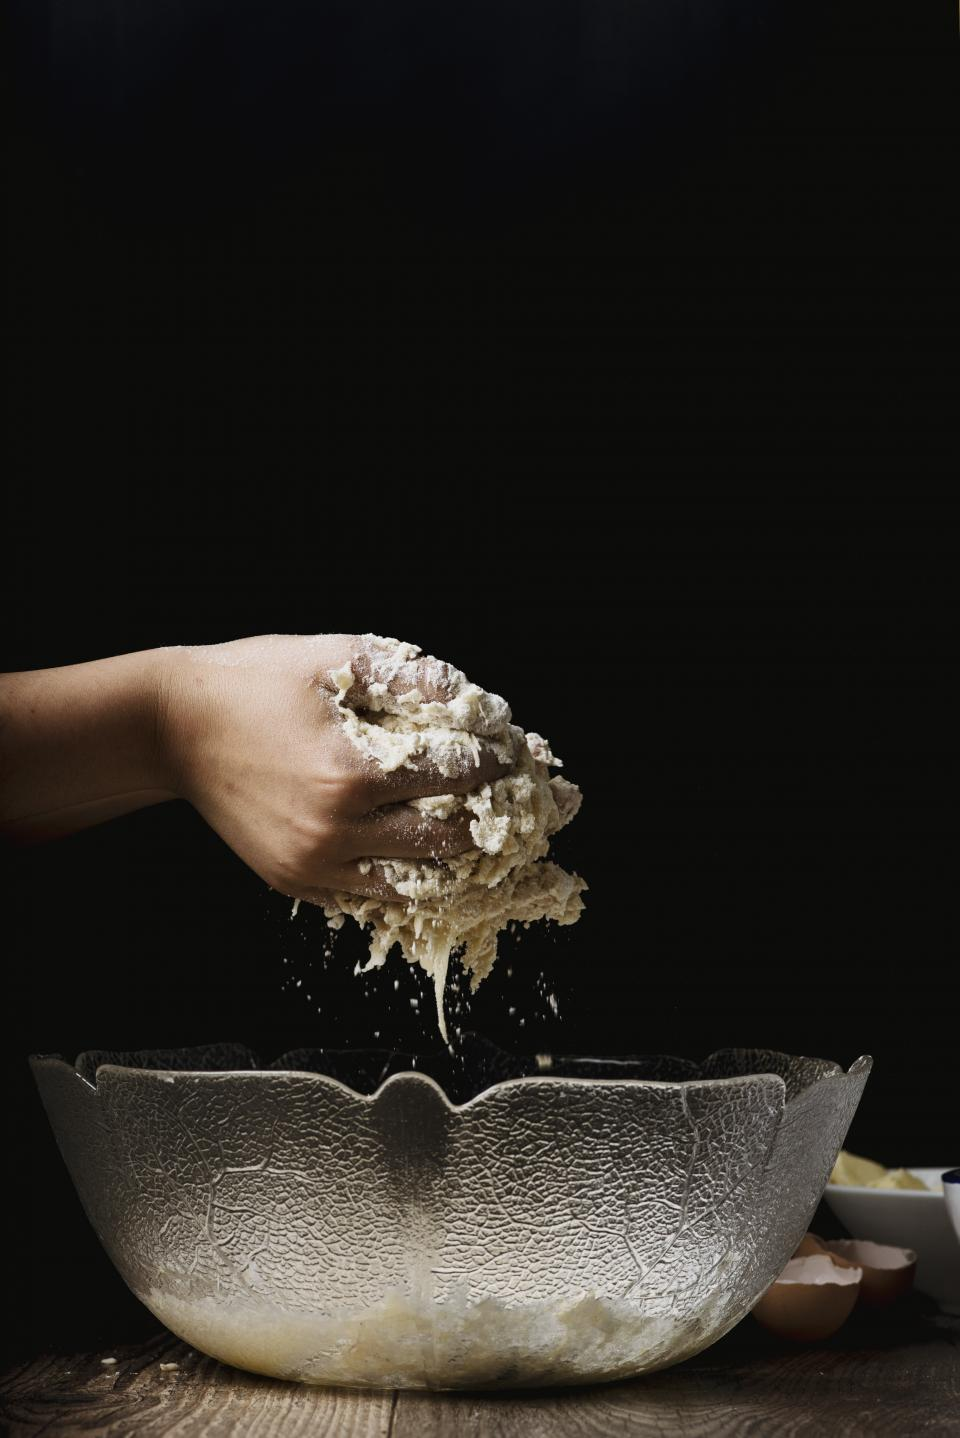 food cook mash knead dough batter glass bowl people person hands eggs bake pastry still bokeh